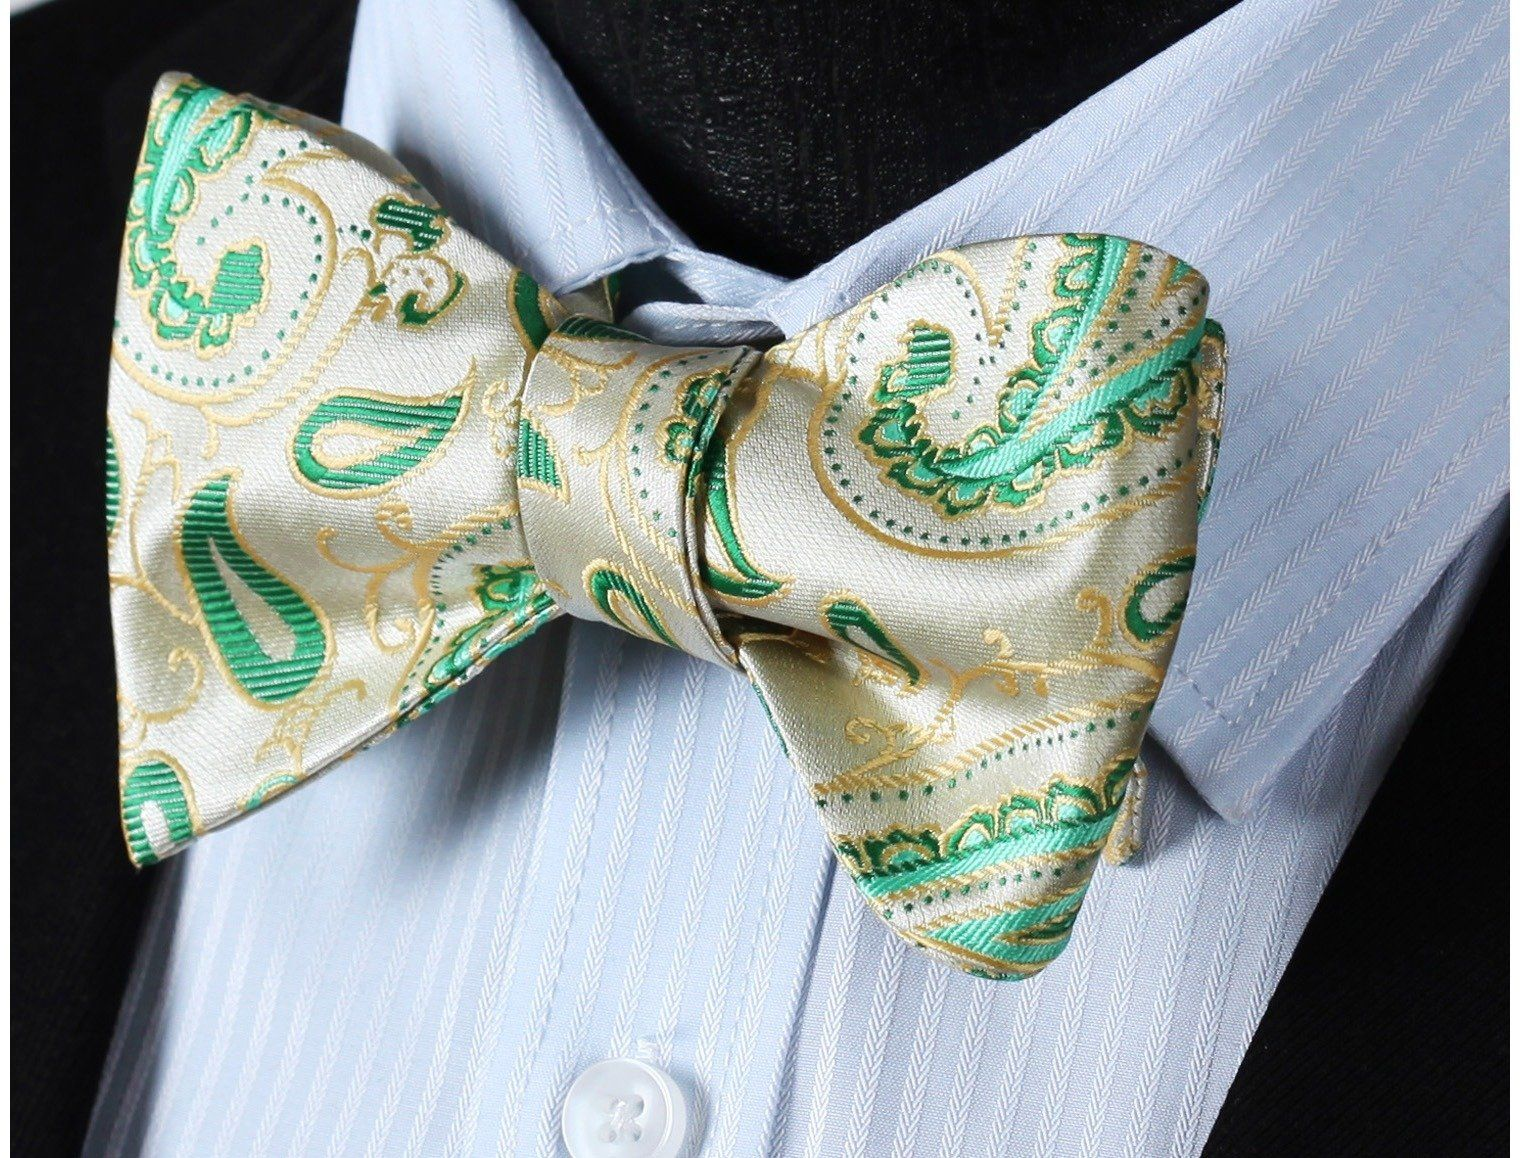 f9b3768e1724 SetSense Men's Paisley Jacquard Woven Self Bow Tie One Size Beige / Green